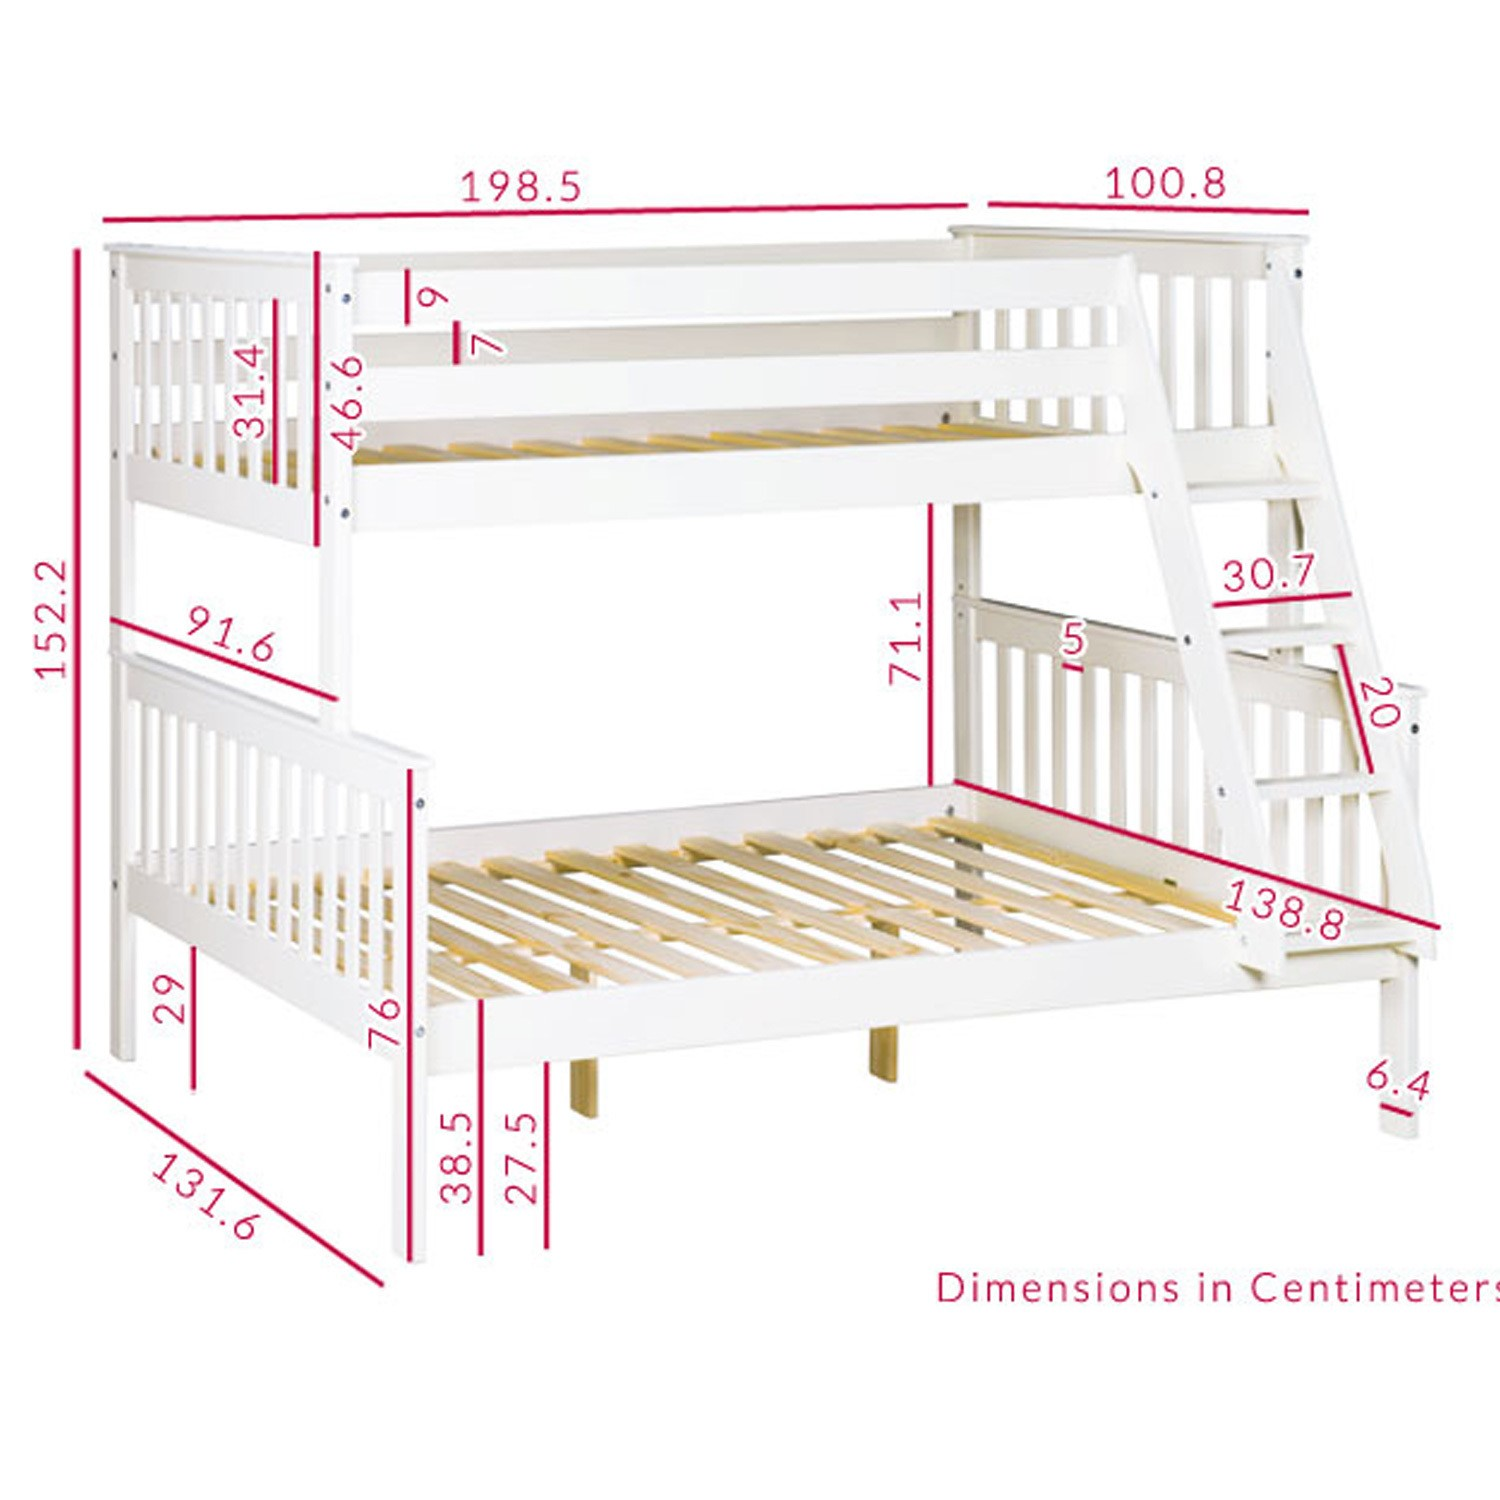 Small Double And Single Bunk Beds Online Discount Shop For Electronics Apparel Toys Books Games Computers Shoes Jewelry Watches Baby Products Sports Outdoors Office Products Bed Bath Furniture Tools